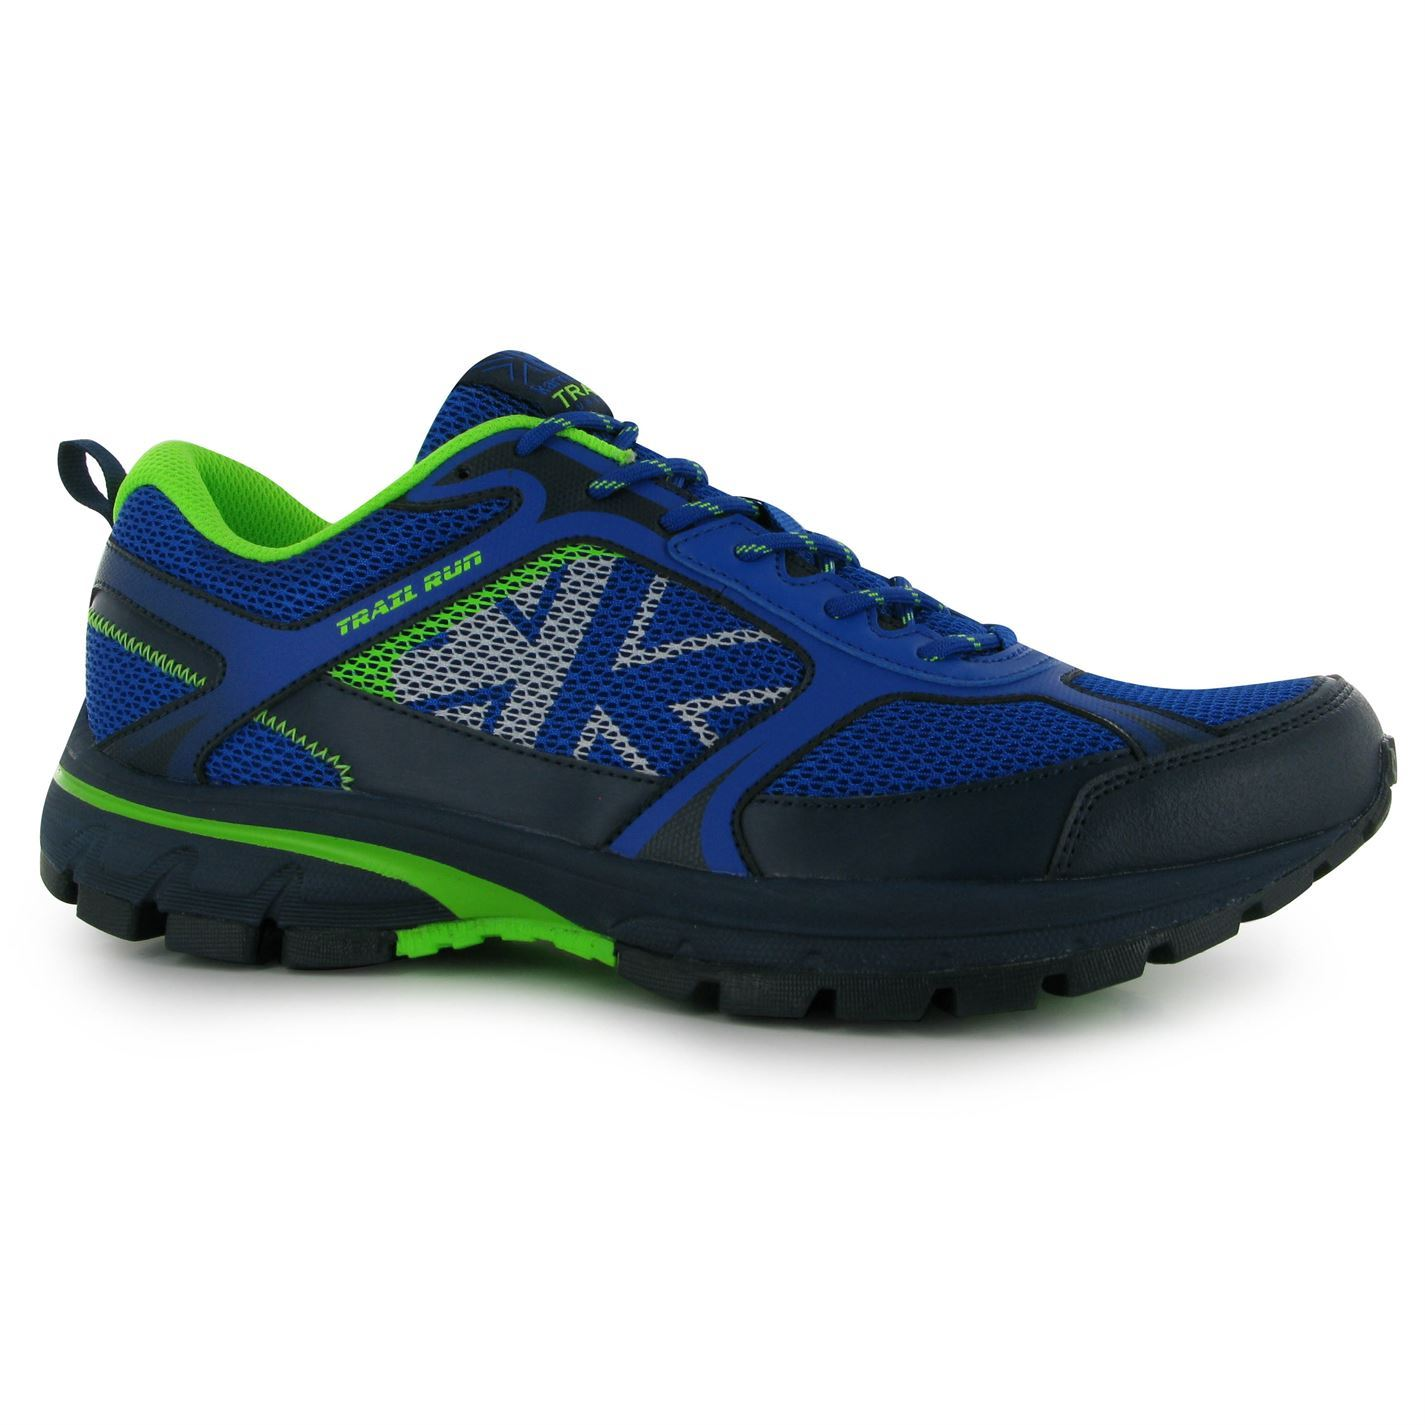 Karrimor X Trail Mens Running Shoes